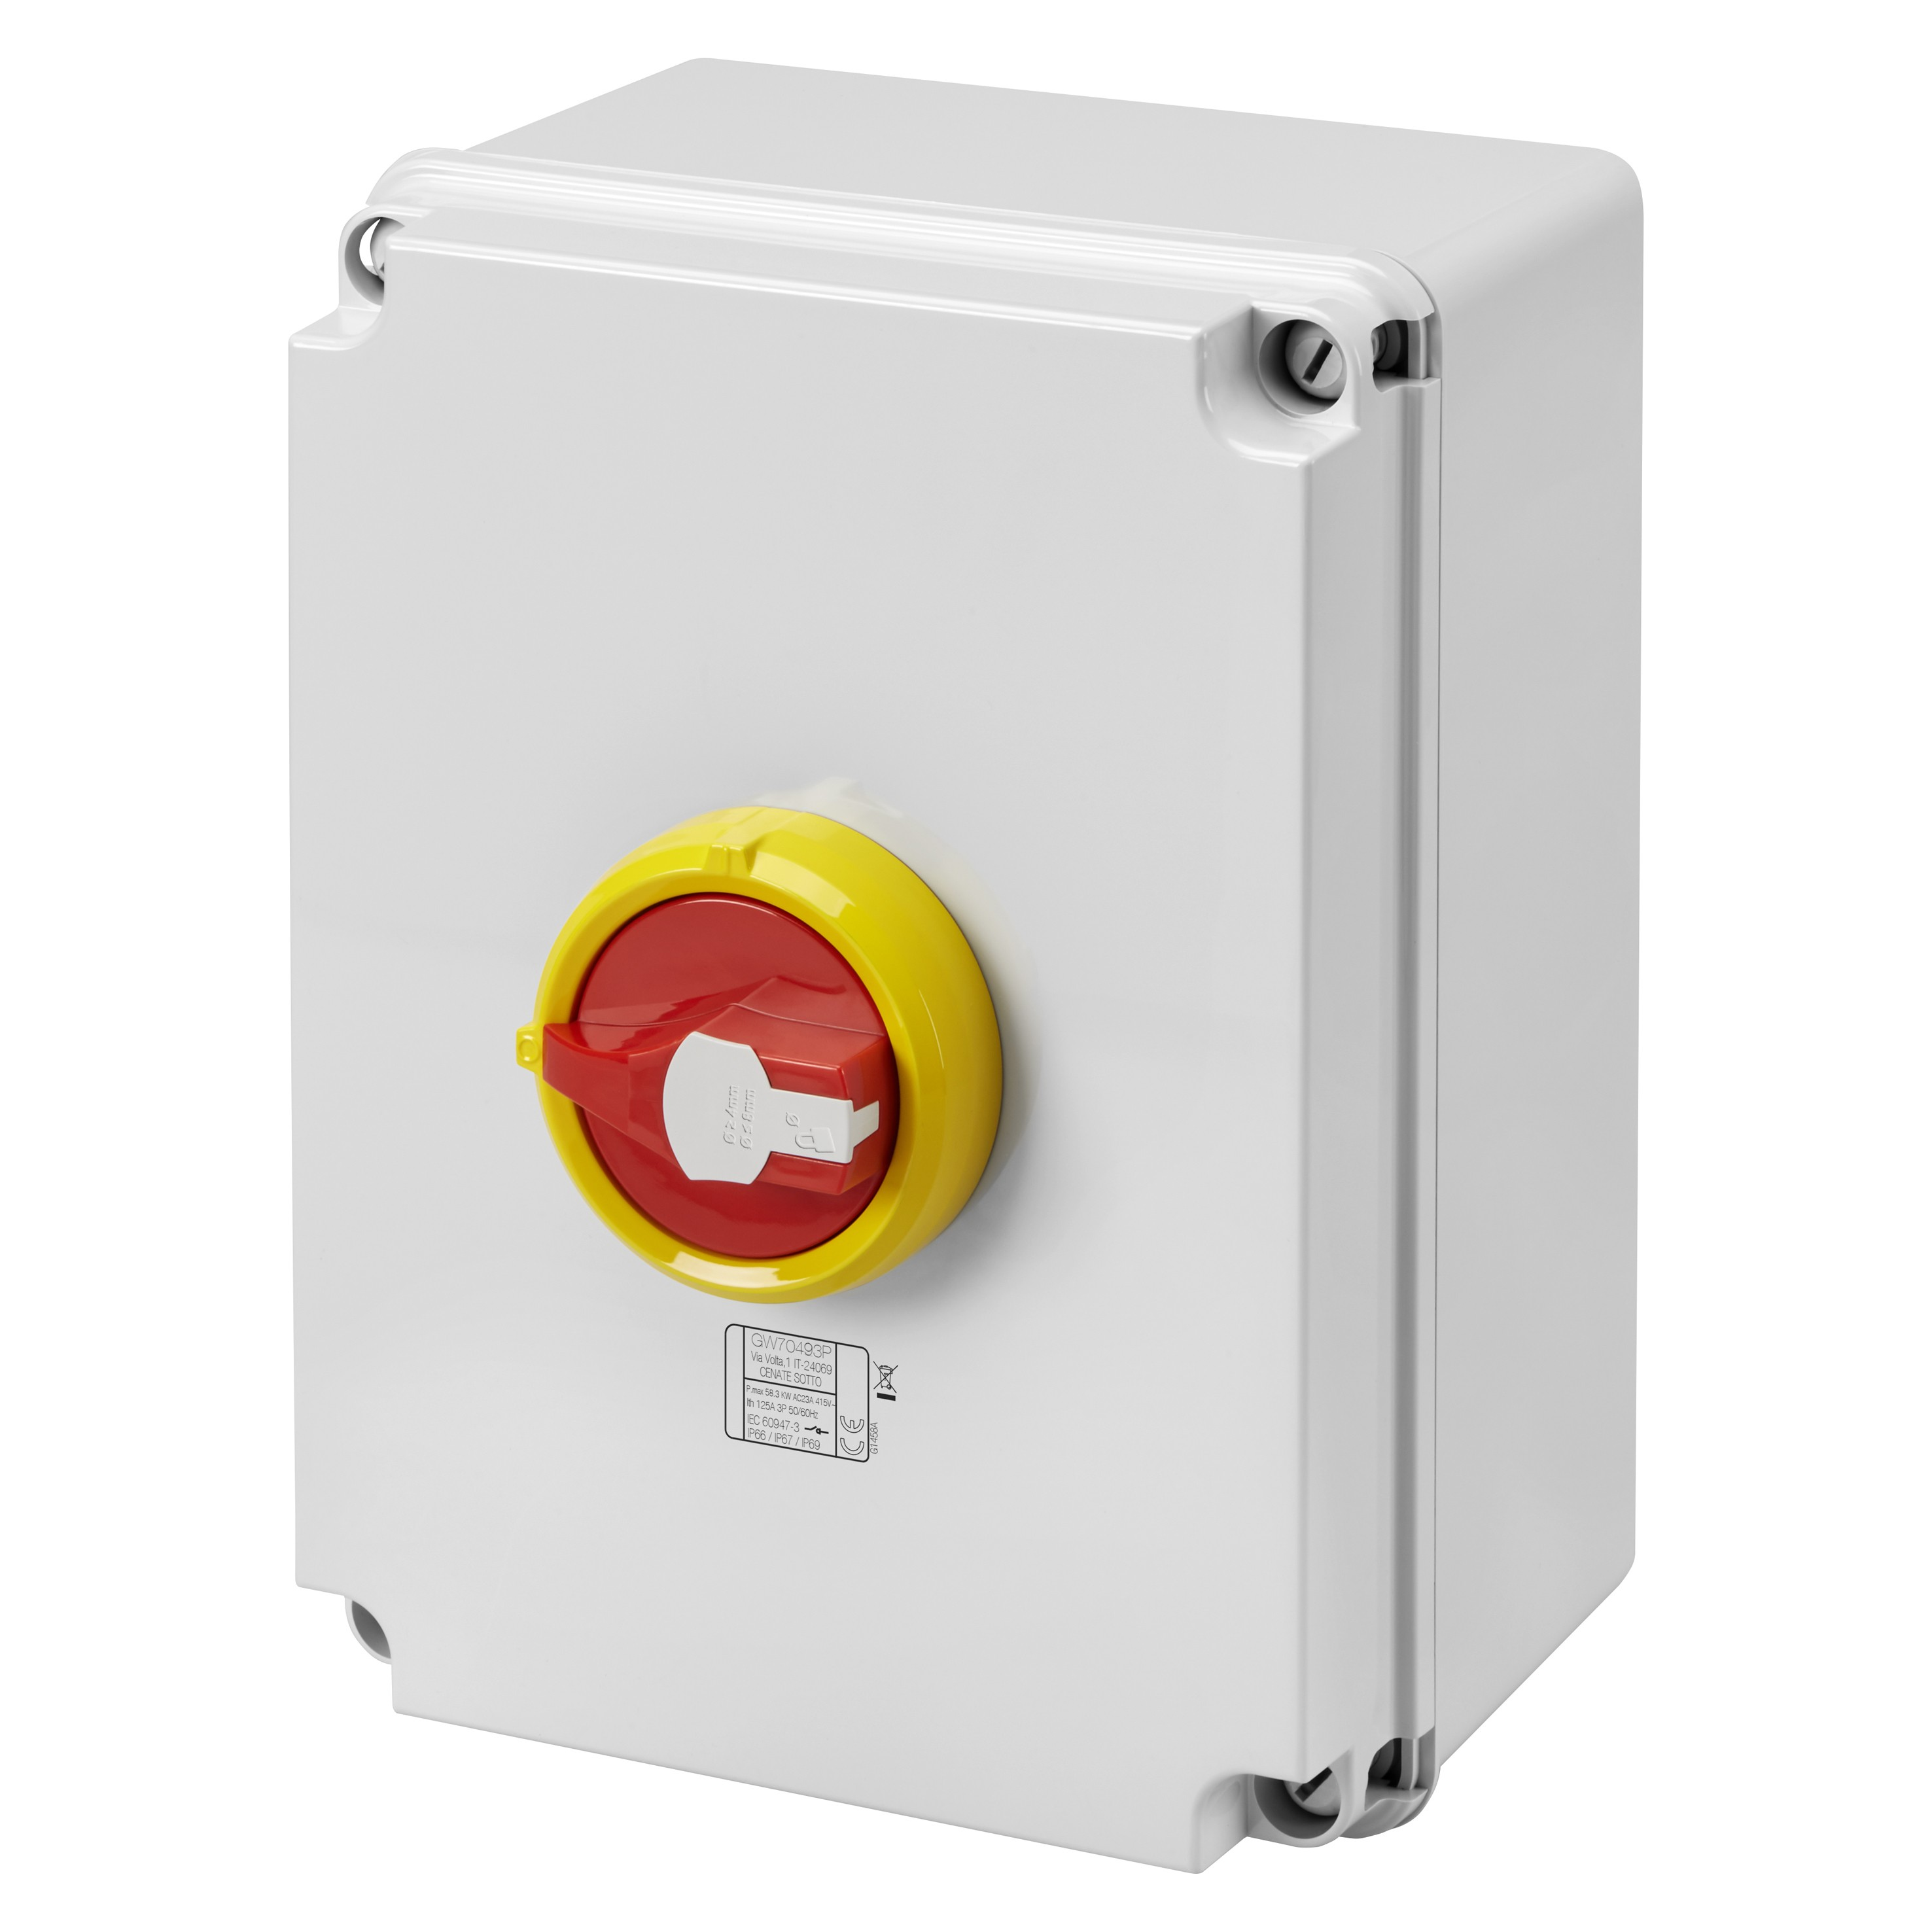 Gewiss GW70494P Isolator HP Emergency 125A 4P IP66/67/69 Isolating Material Box with Lockable Red Knob - Buy online or in store from John Cribb & Sons Ltd